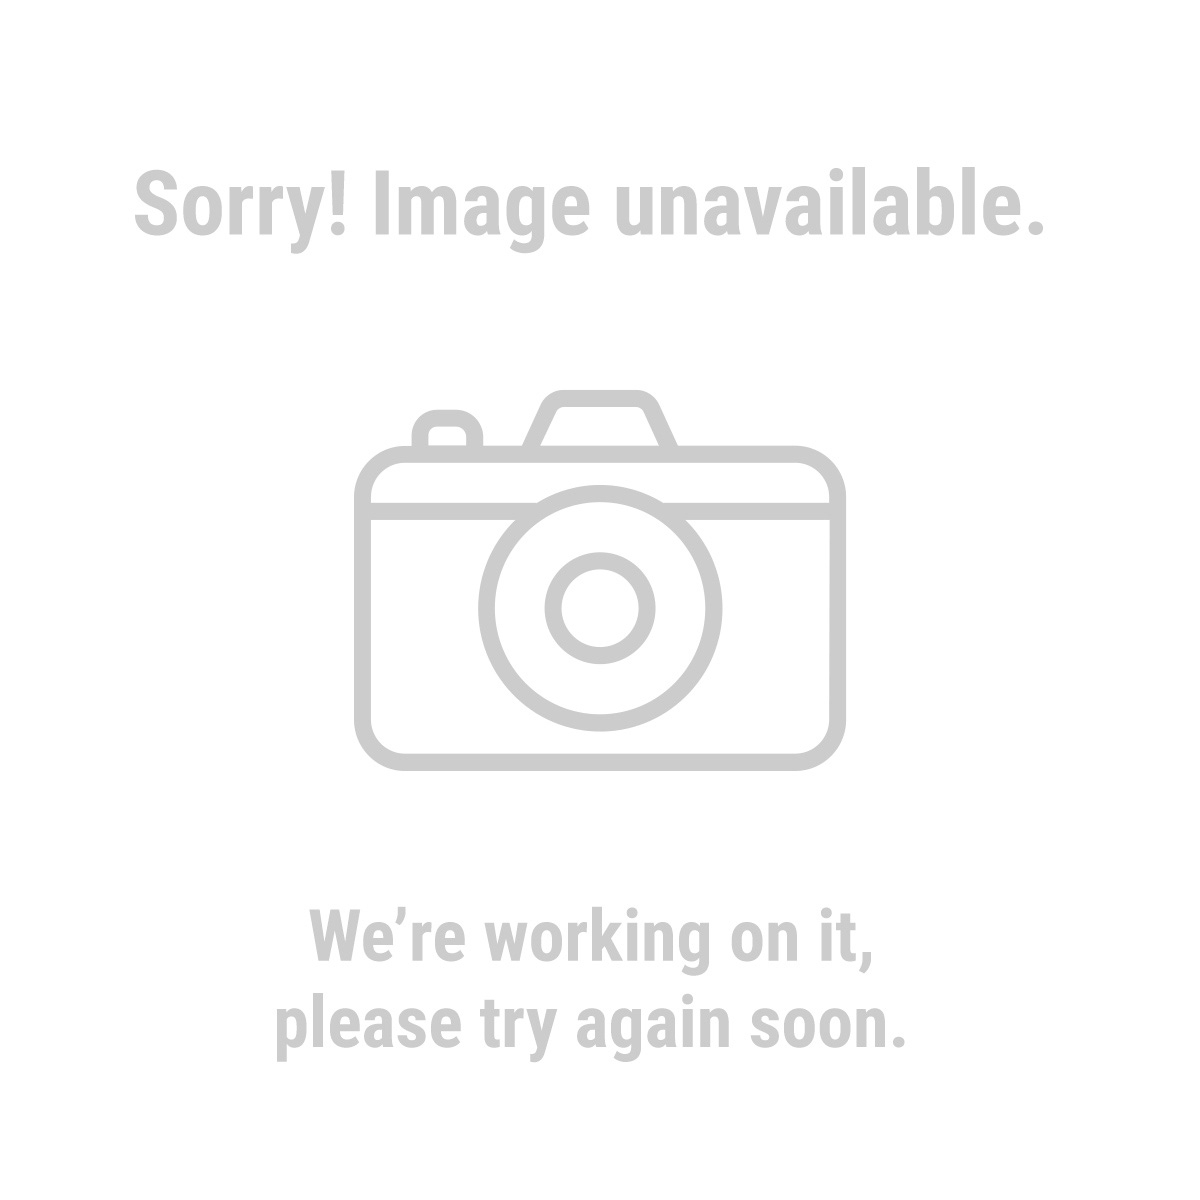 2 Piece Solid Steel Auto Ramp Set